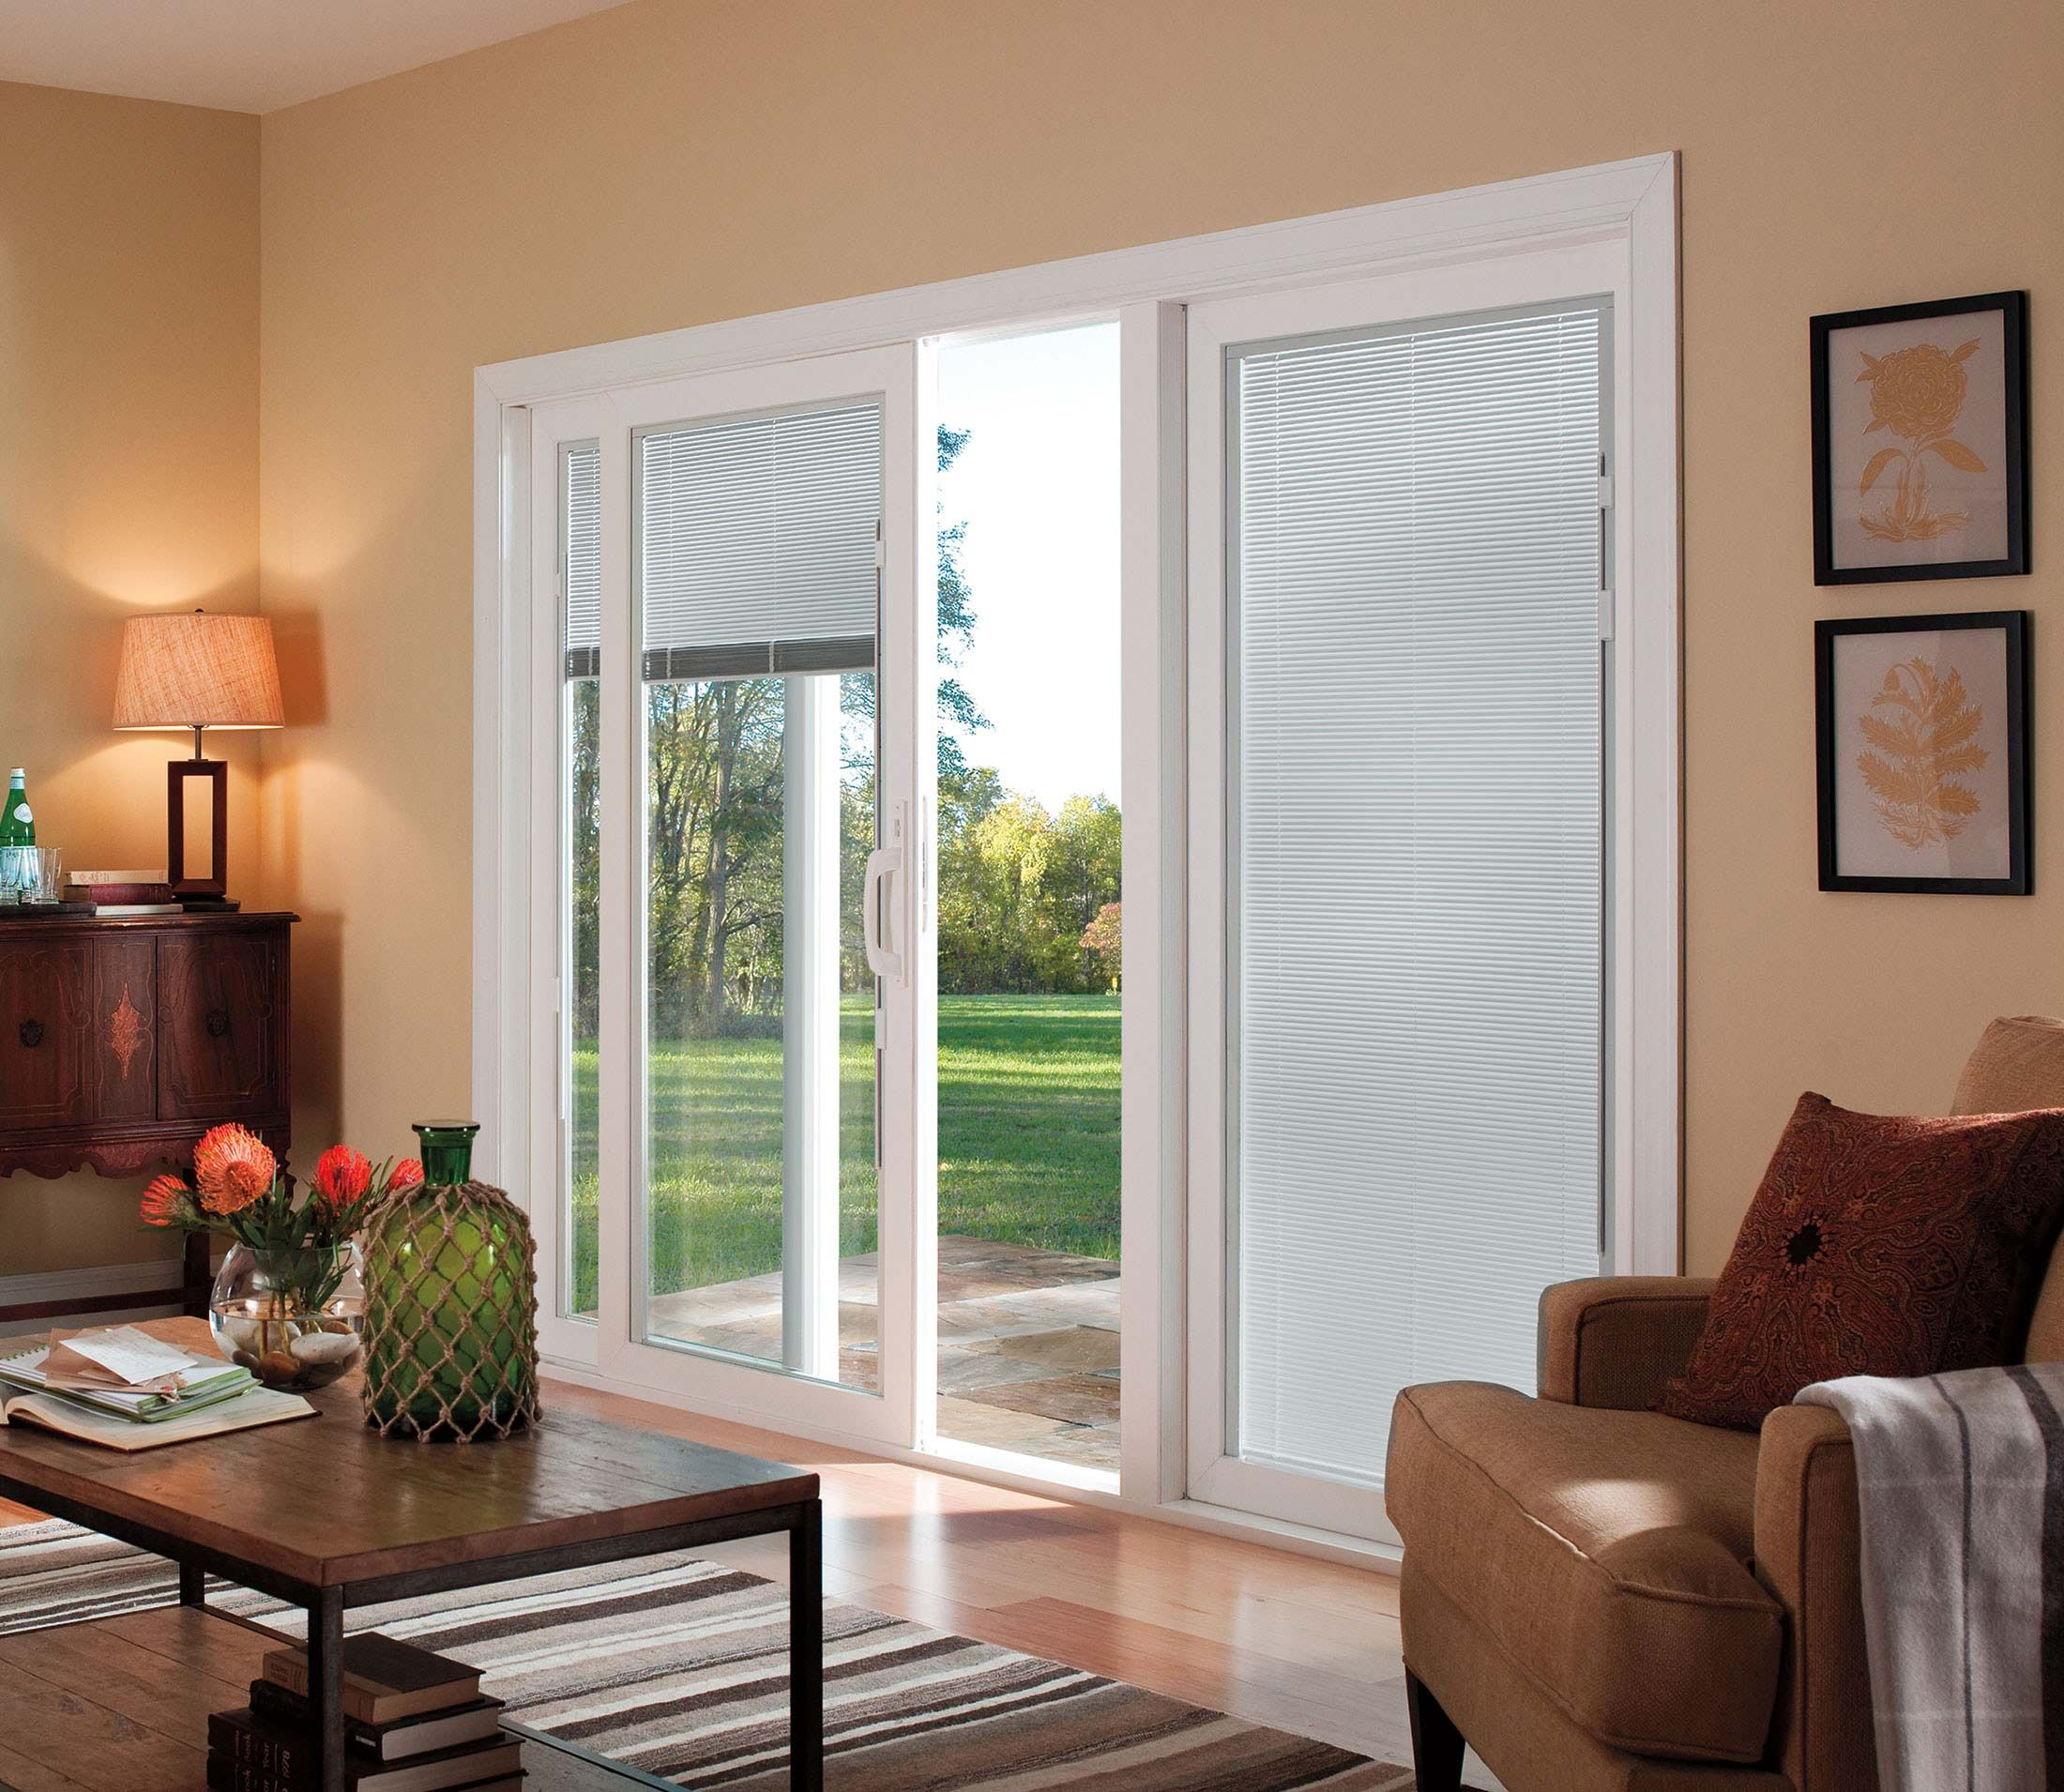 pella 350 series sliding patio door pella com vinyl triple pane